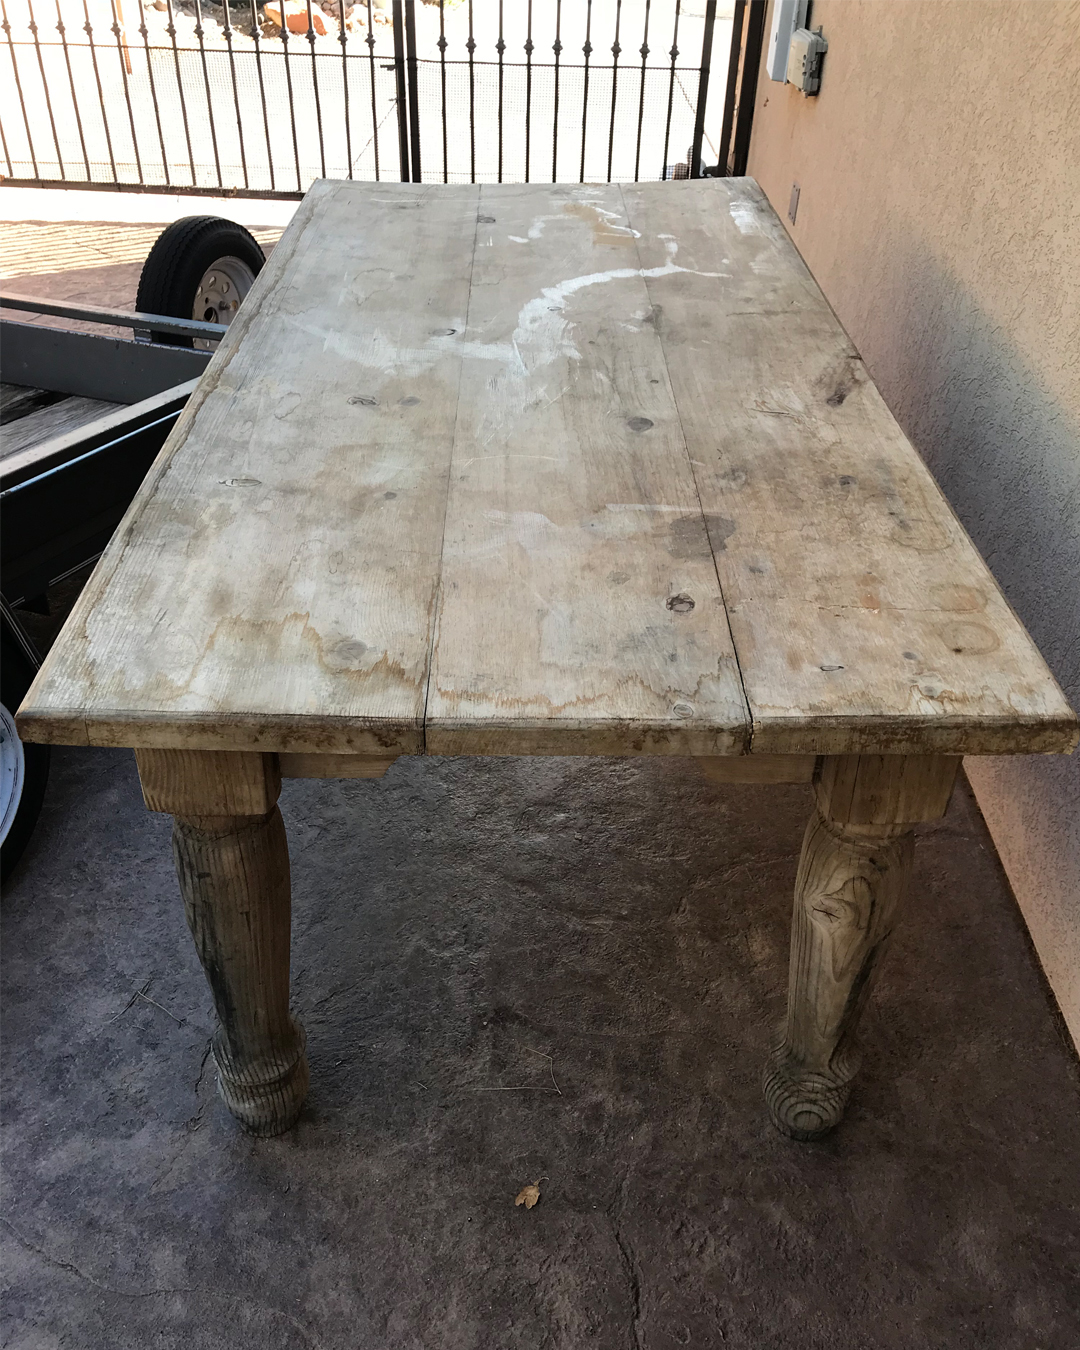 DIY, furniture makeover, farm table makeover, farm table DIY, DIY blogger inspo, furniture makeover inspiration, home makeover inspiration, DIY inspo, chalk paint, finishing wax